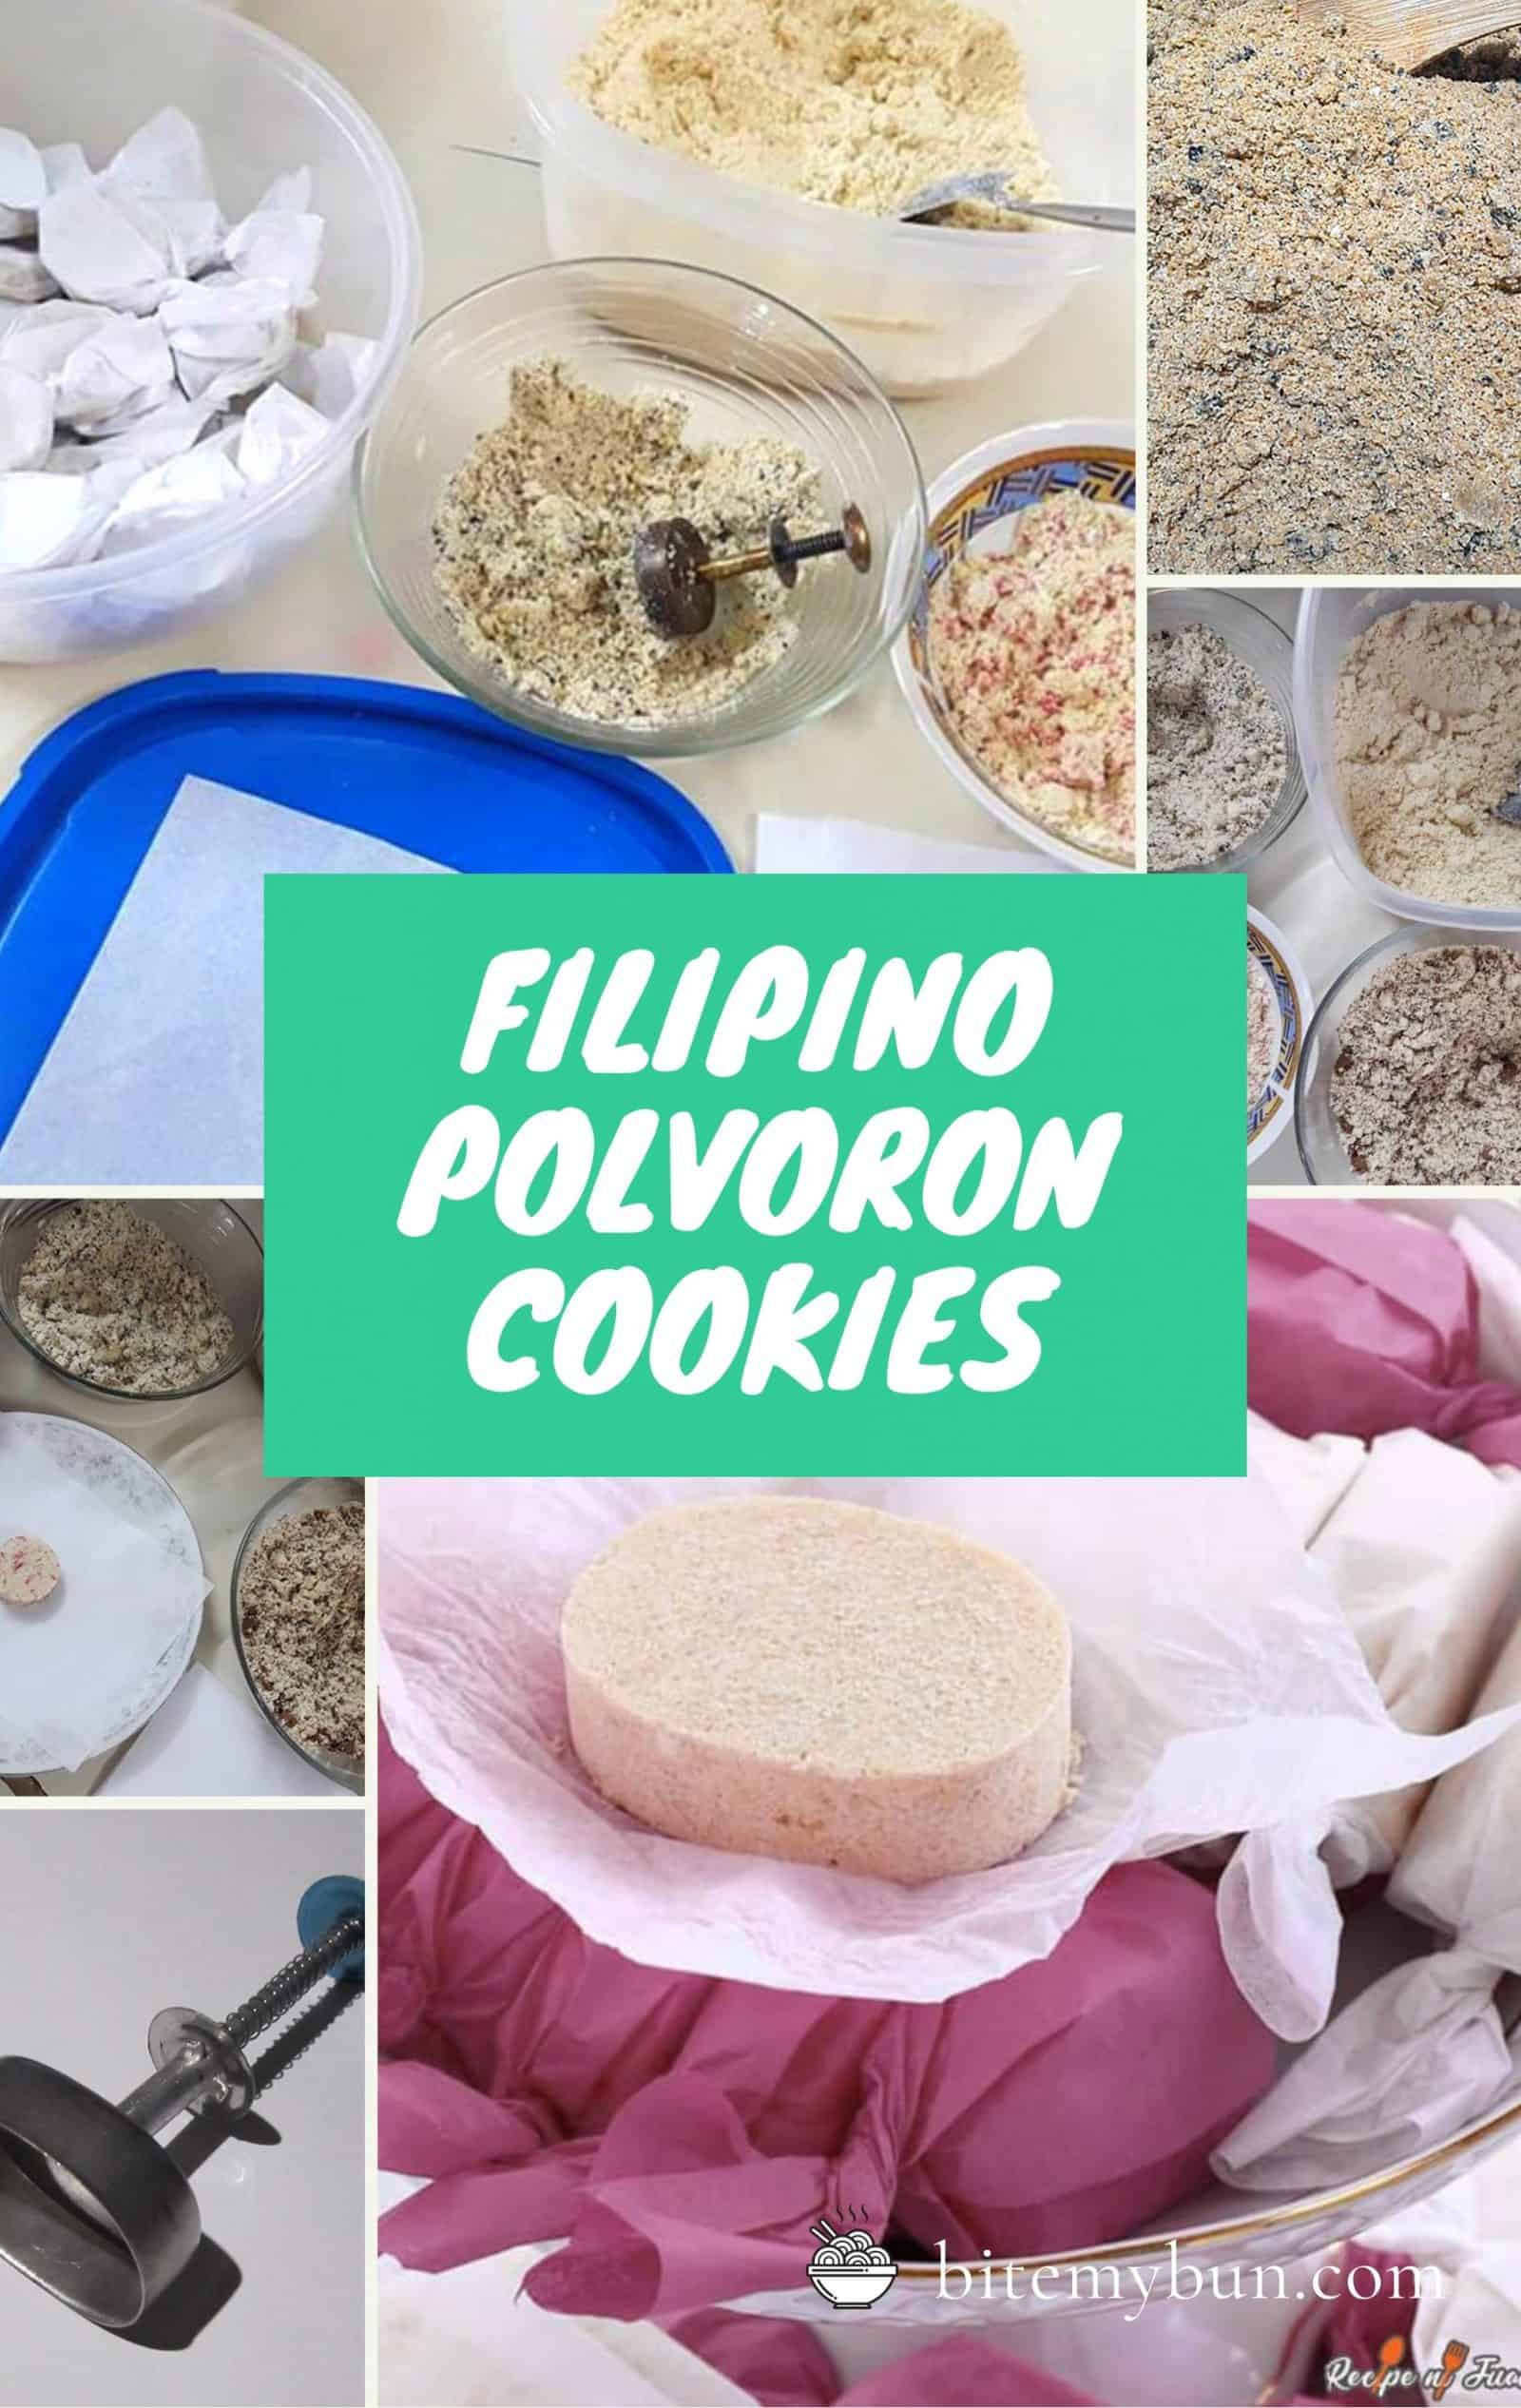 Filipino polvoron cookies